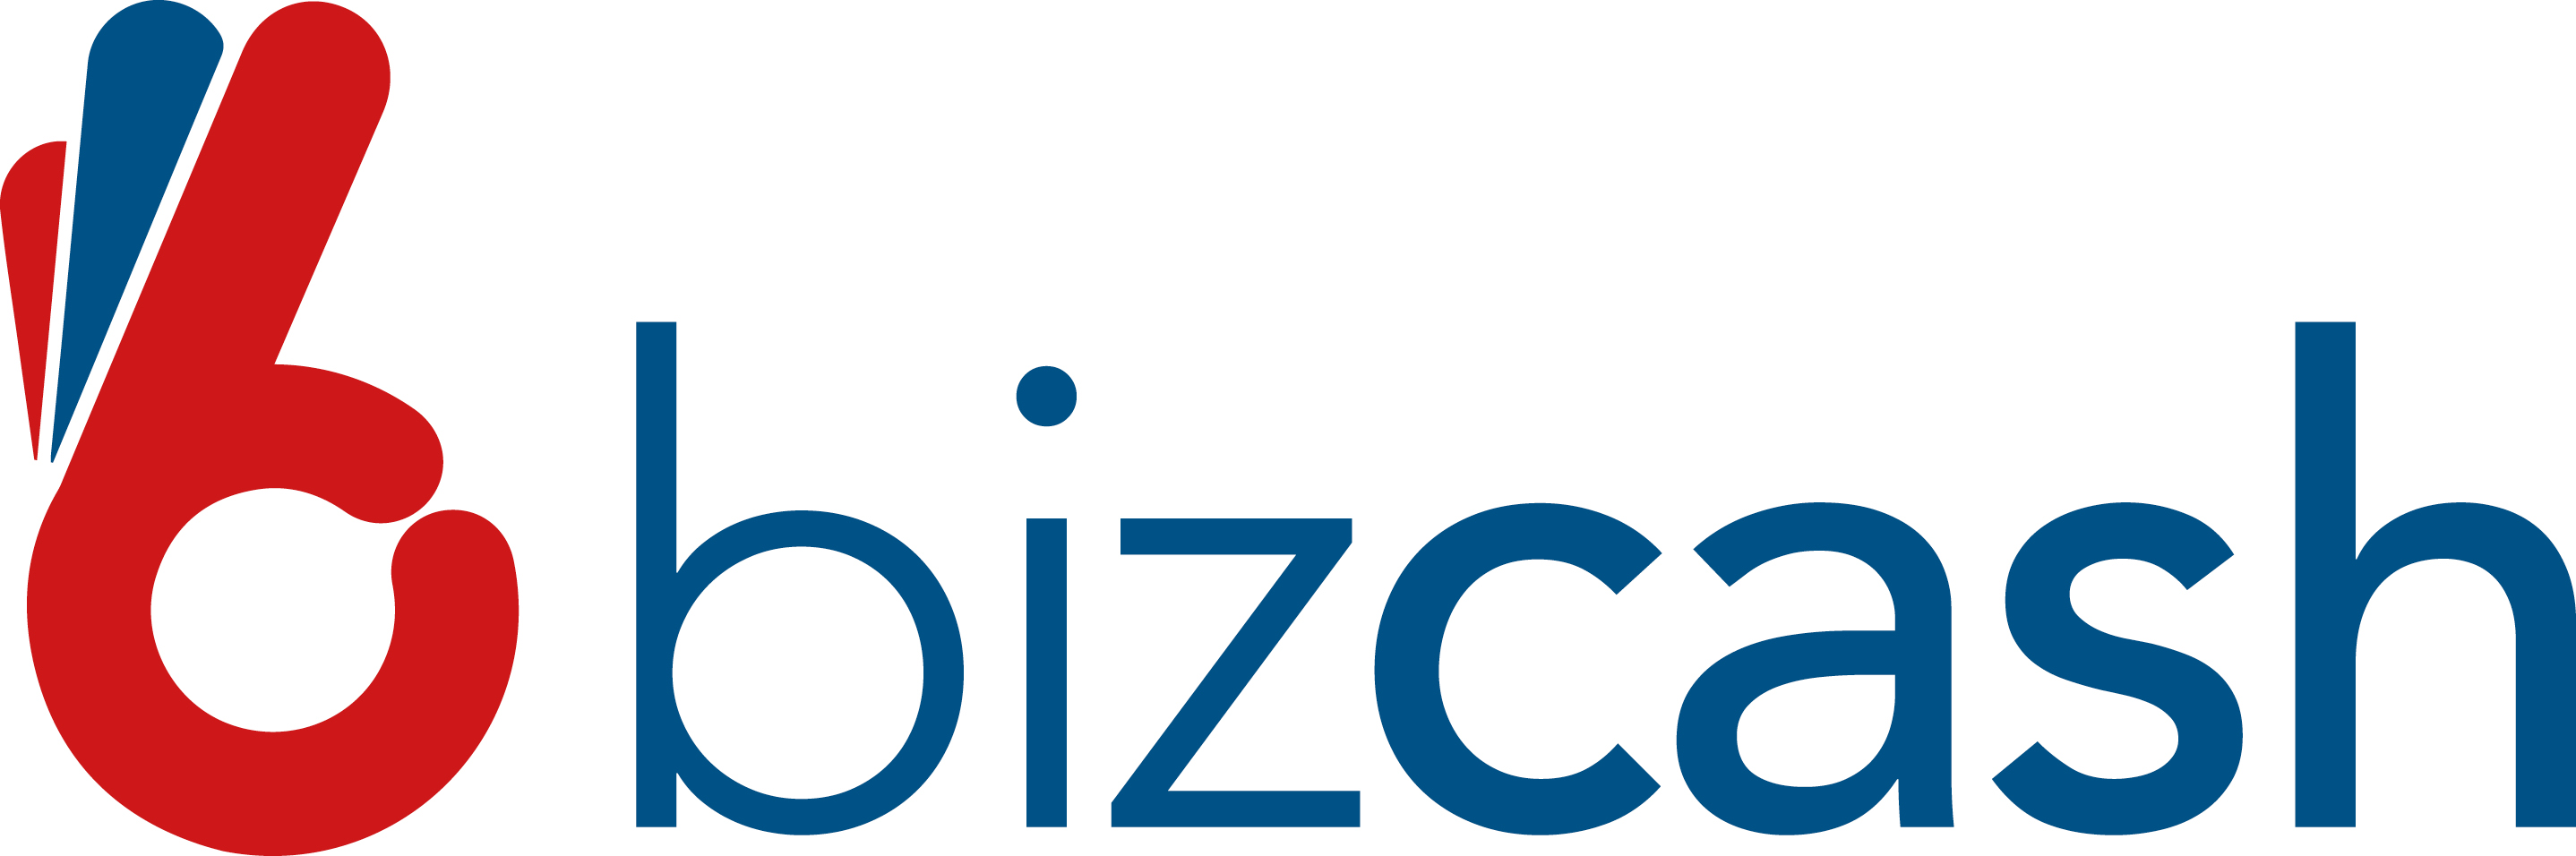 12533 bizcash logo full colour